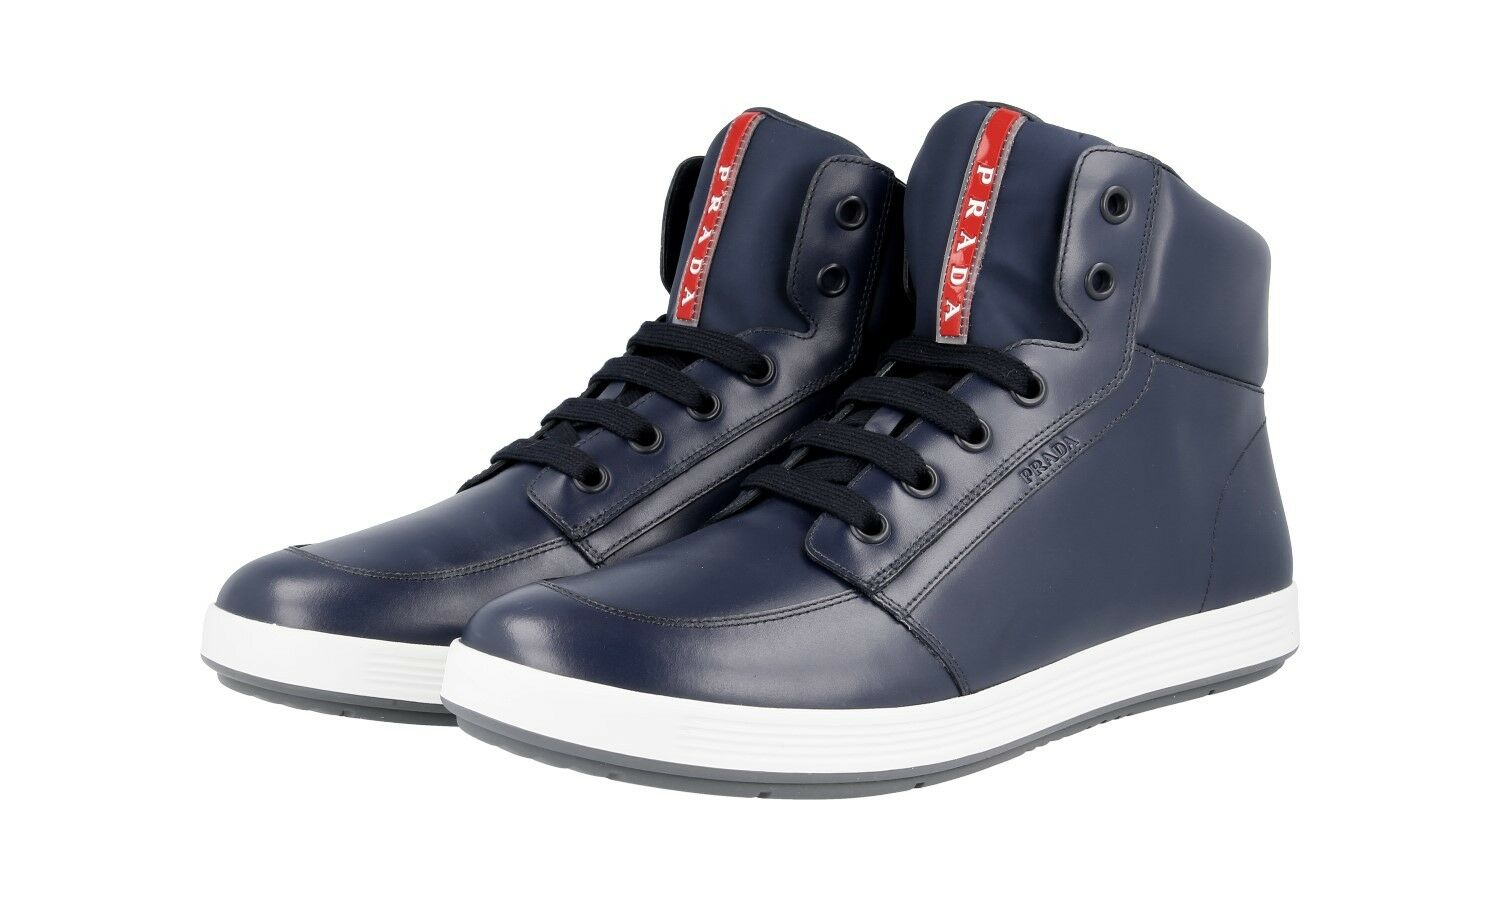 AUTH LUXURY PRADA SNEAKERS HIGH TOP SHOES 4T2843 blueE NEW 10 44 44,5